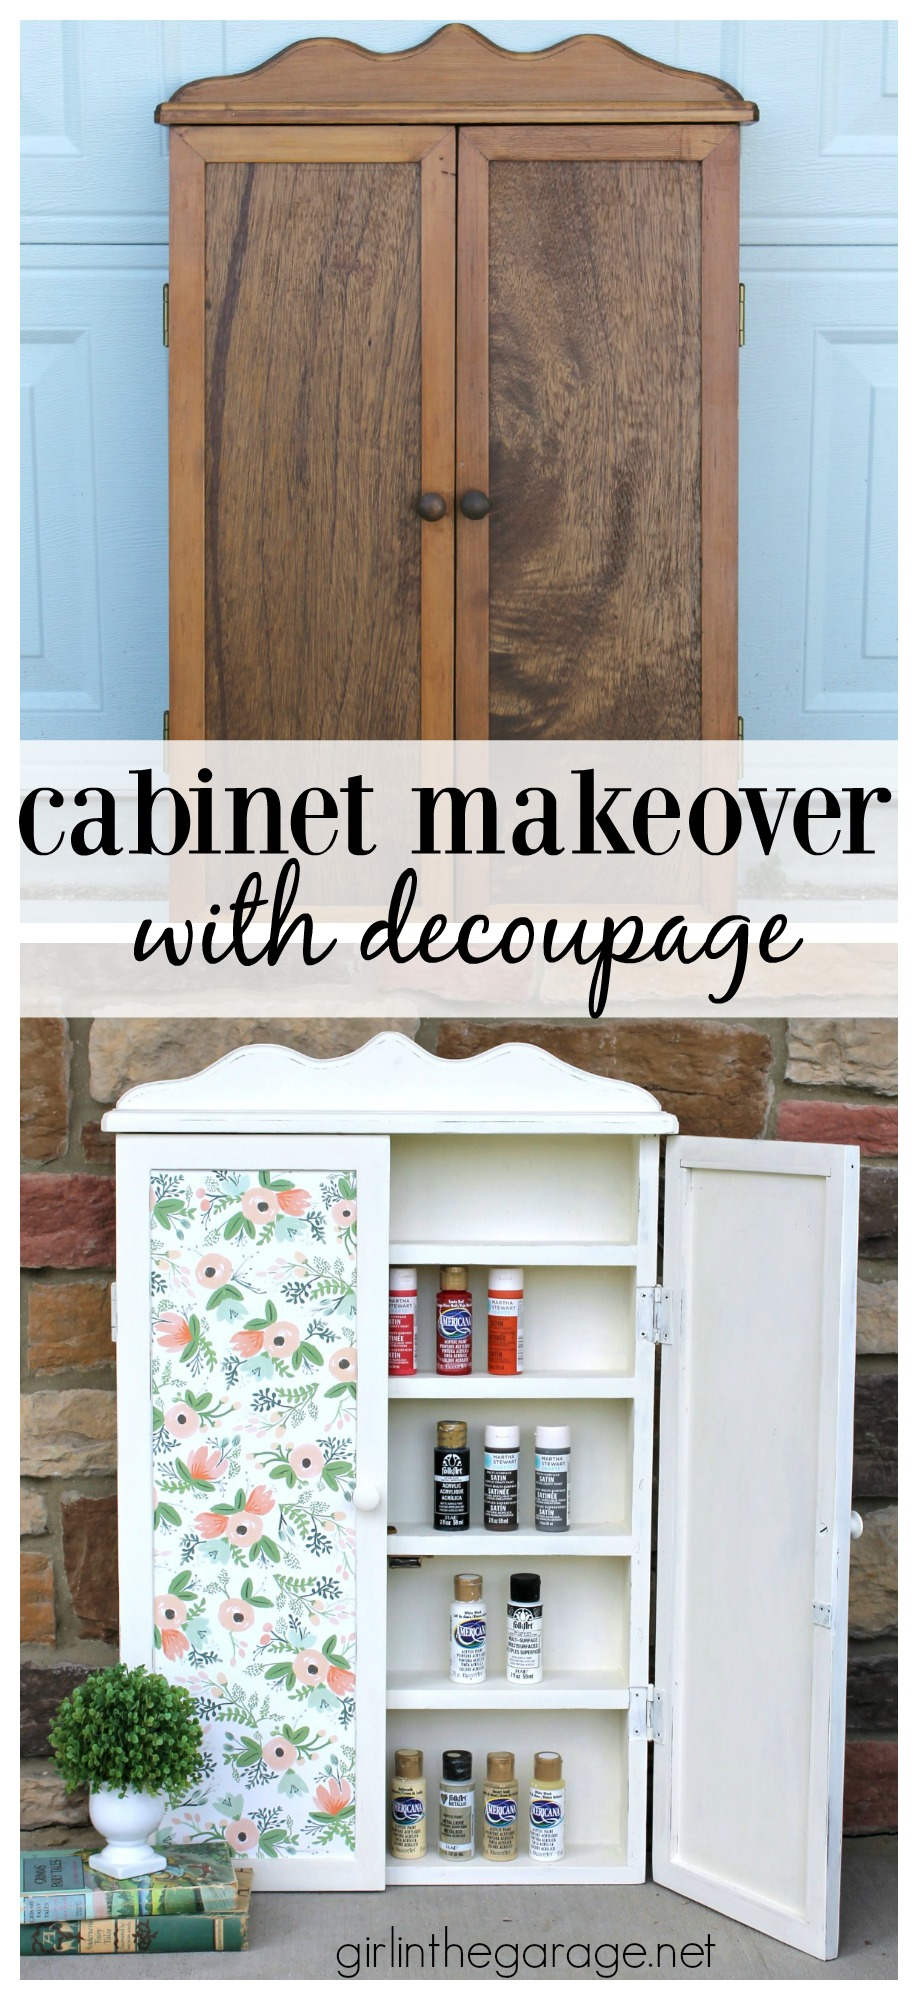 Yard sale cabinet makeover with decoupage - Girl in the Garage